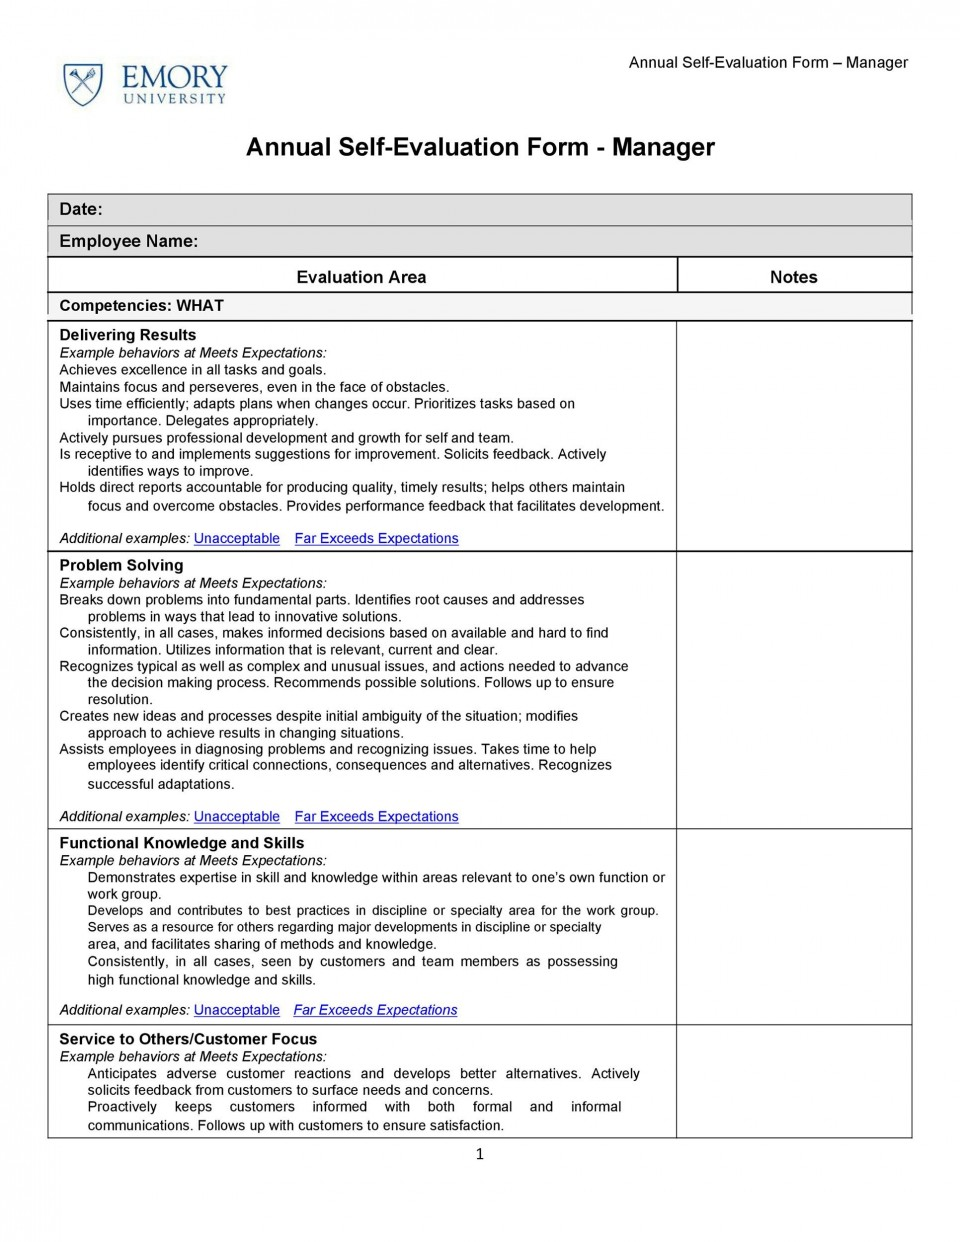 008 Unusual Employee Self Evaluation Form Template High Def  Free Word960